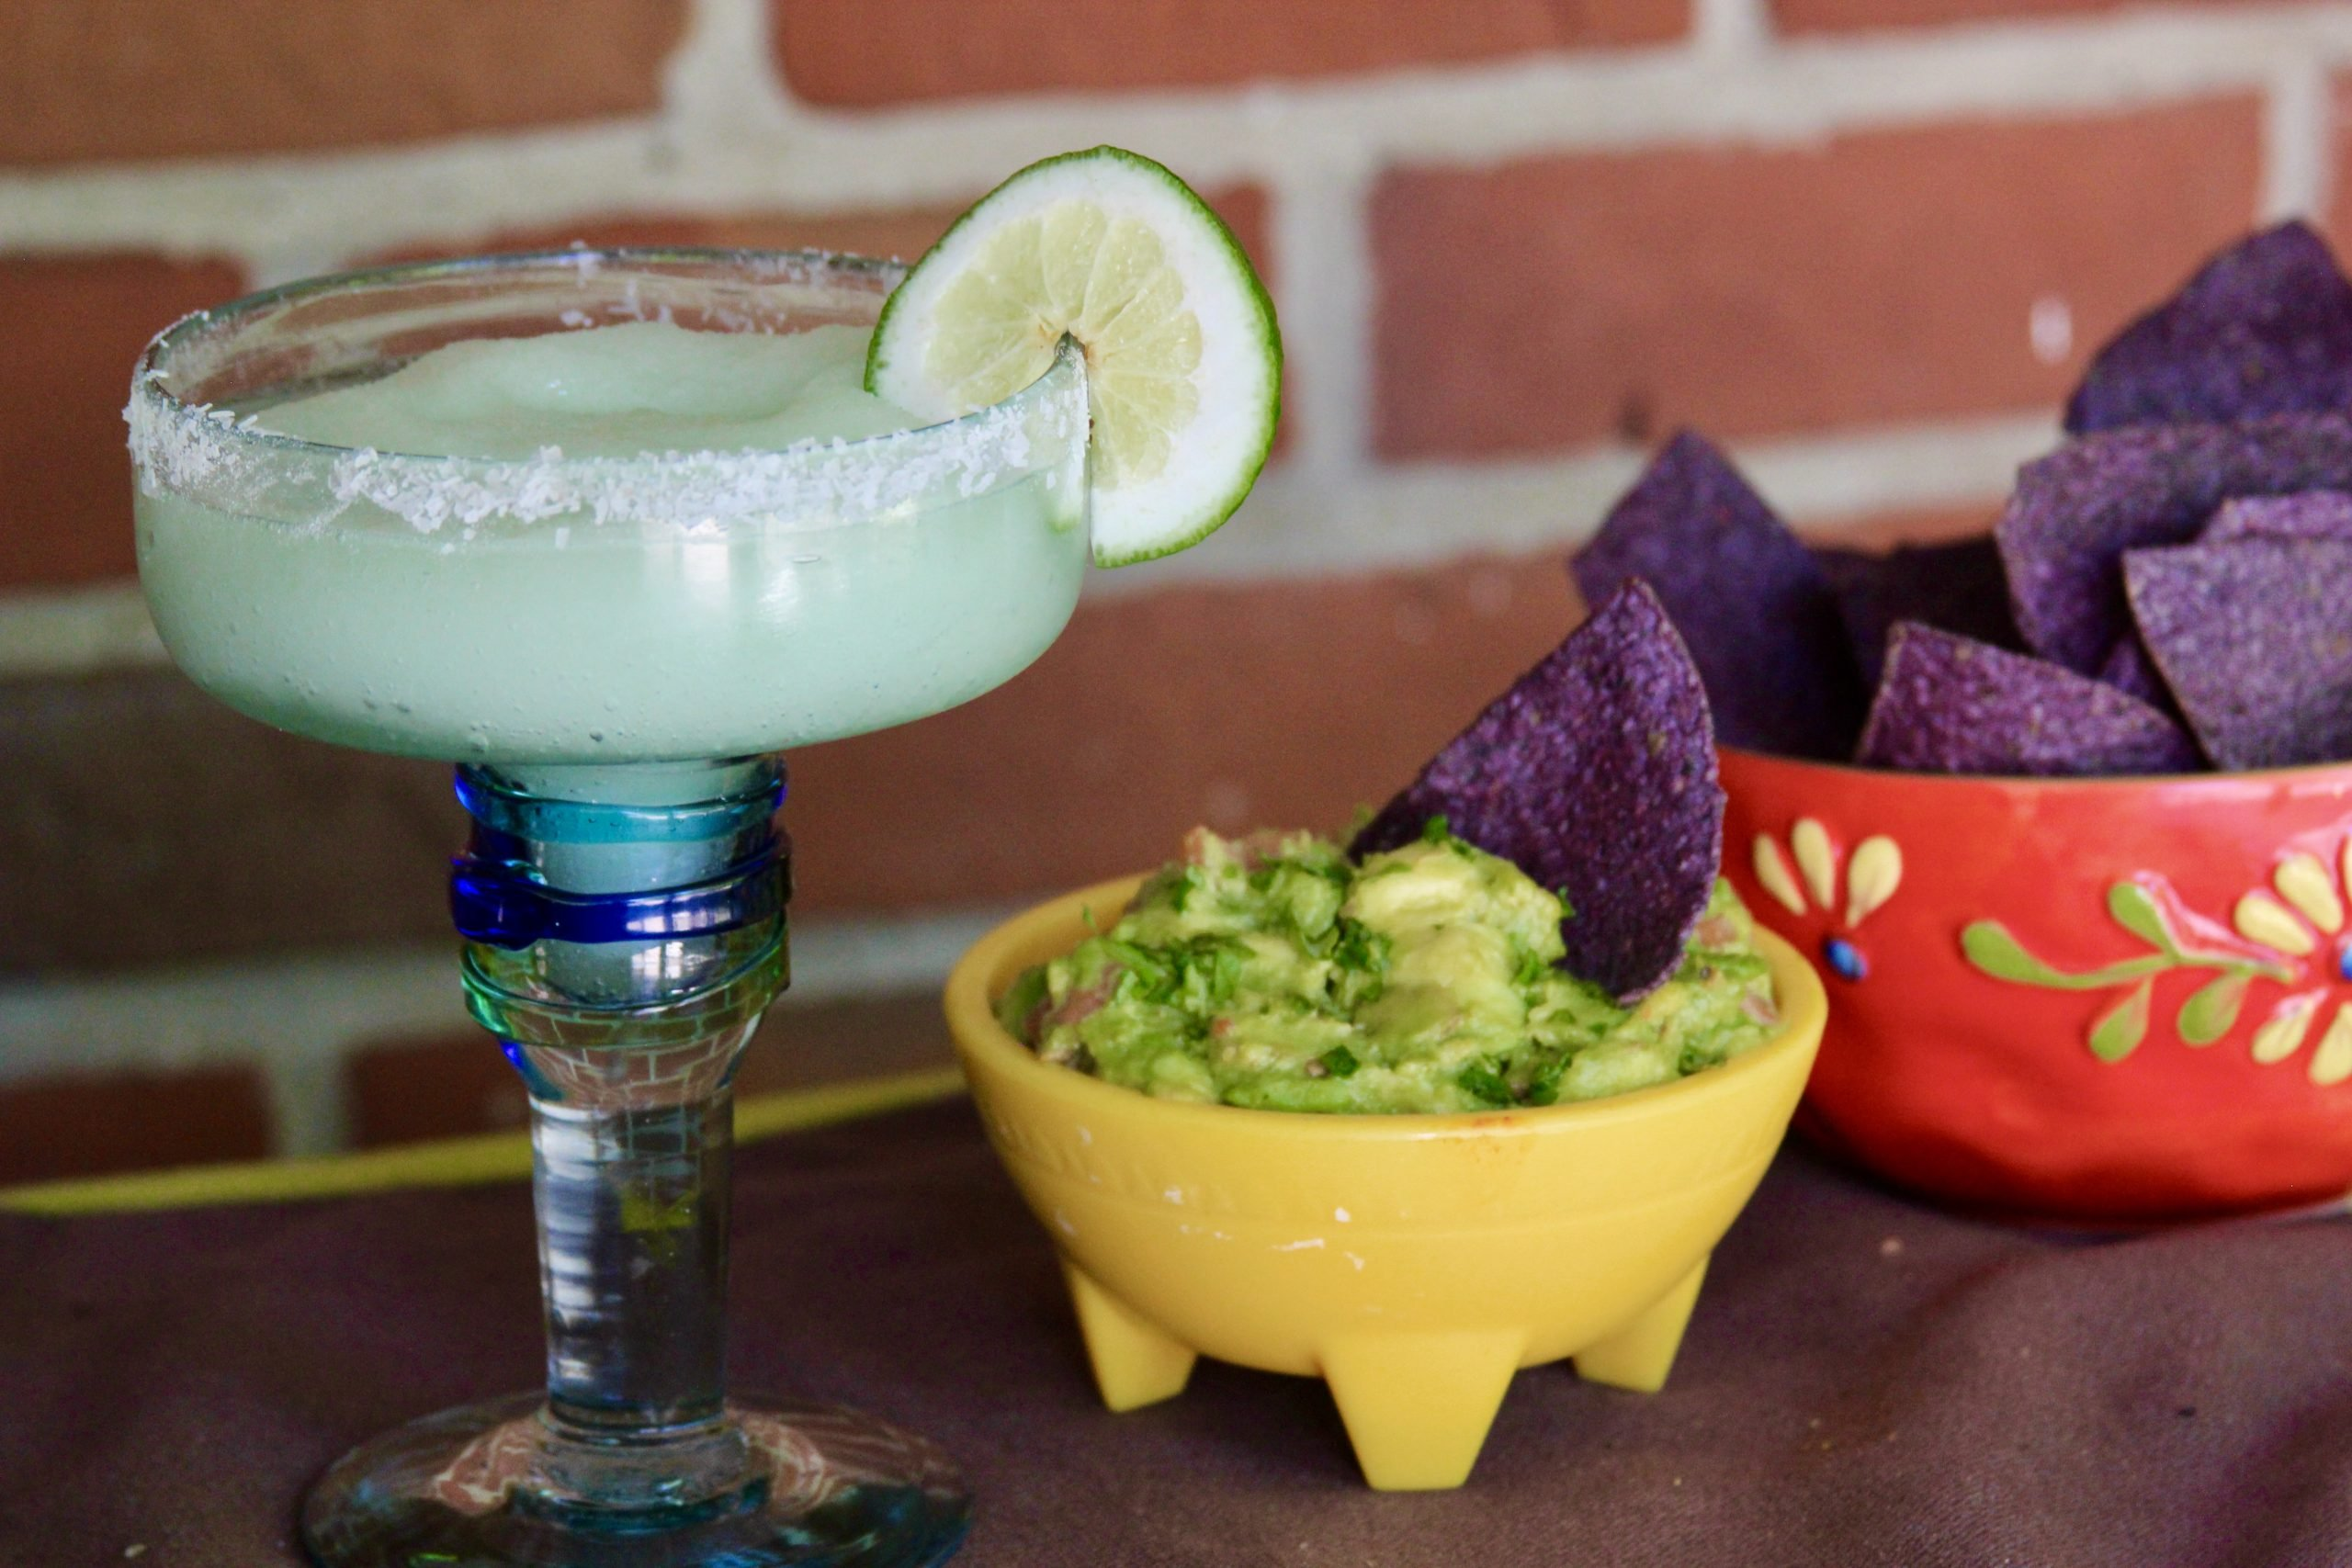 Grilled lime margarita with guacamole and chips